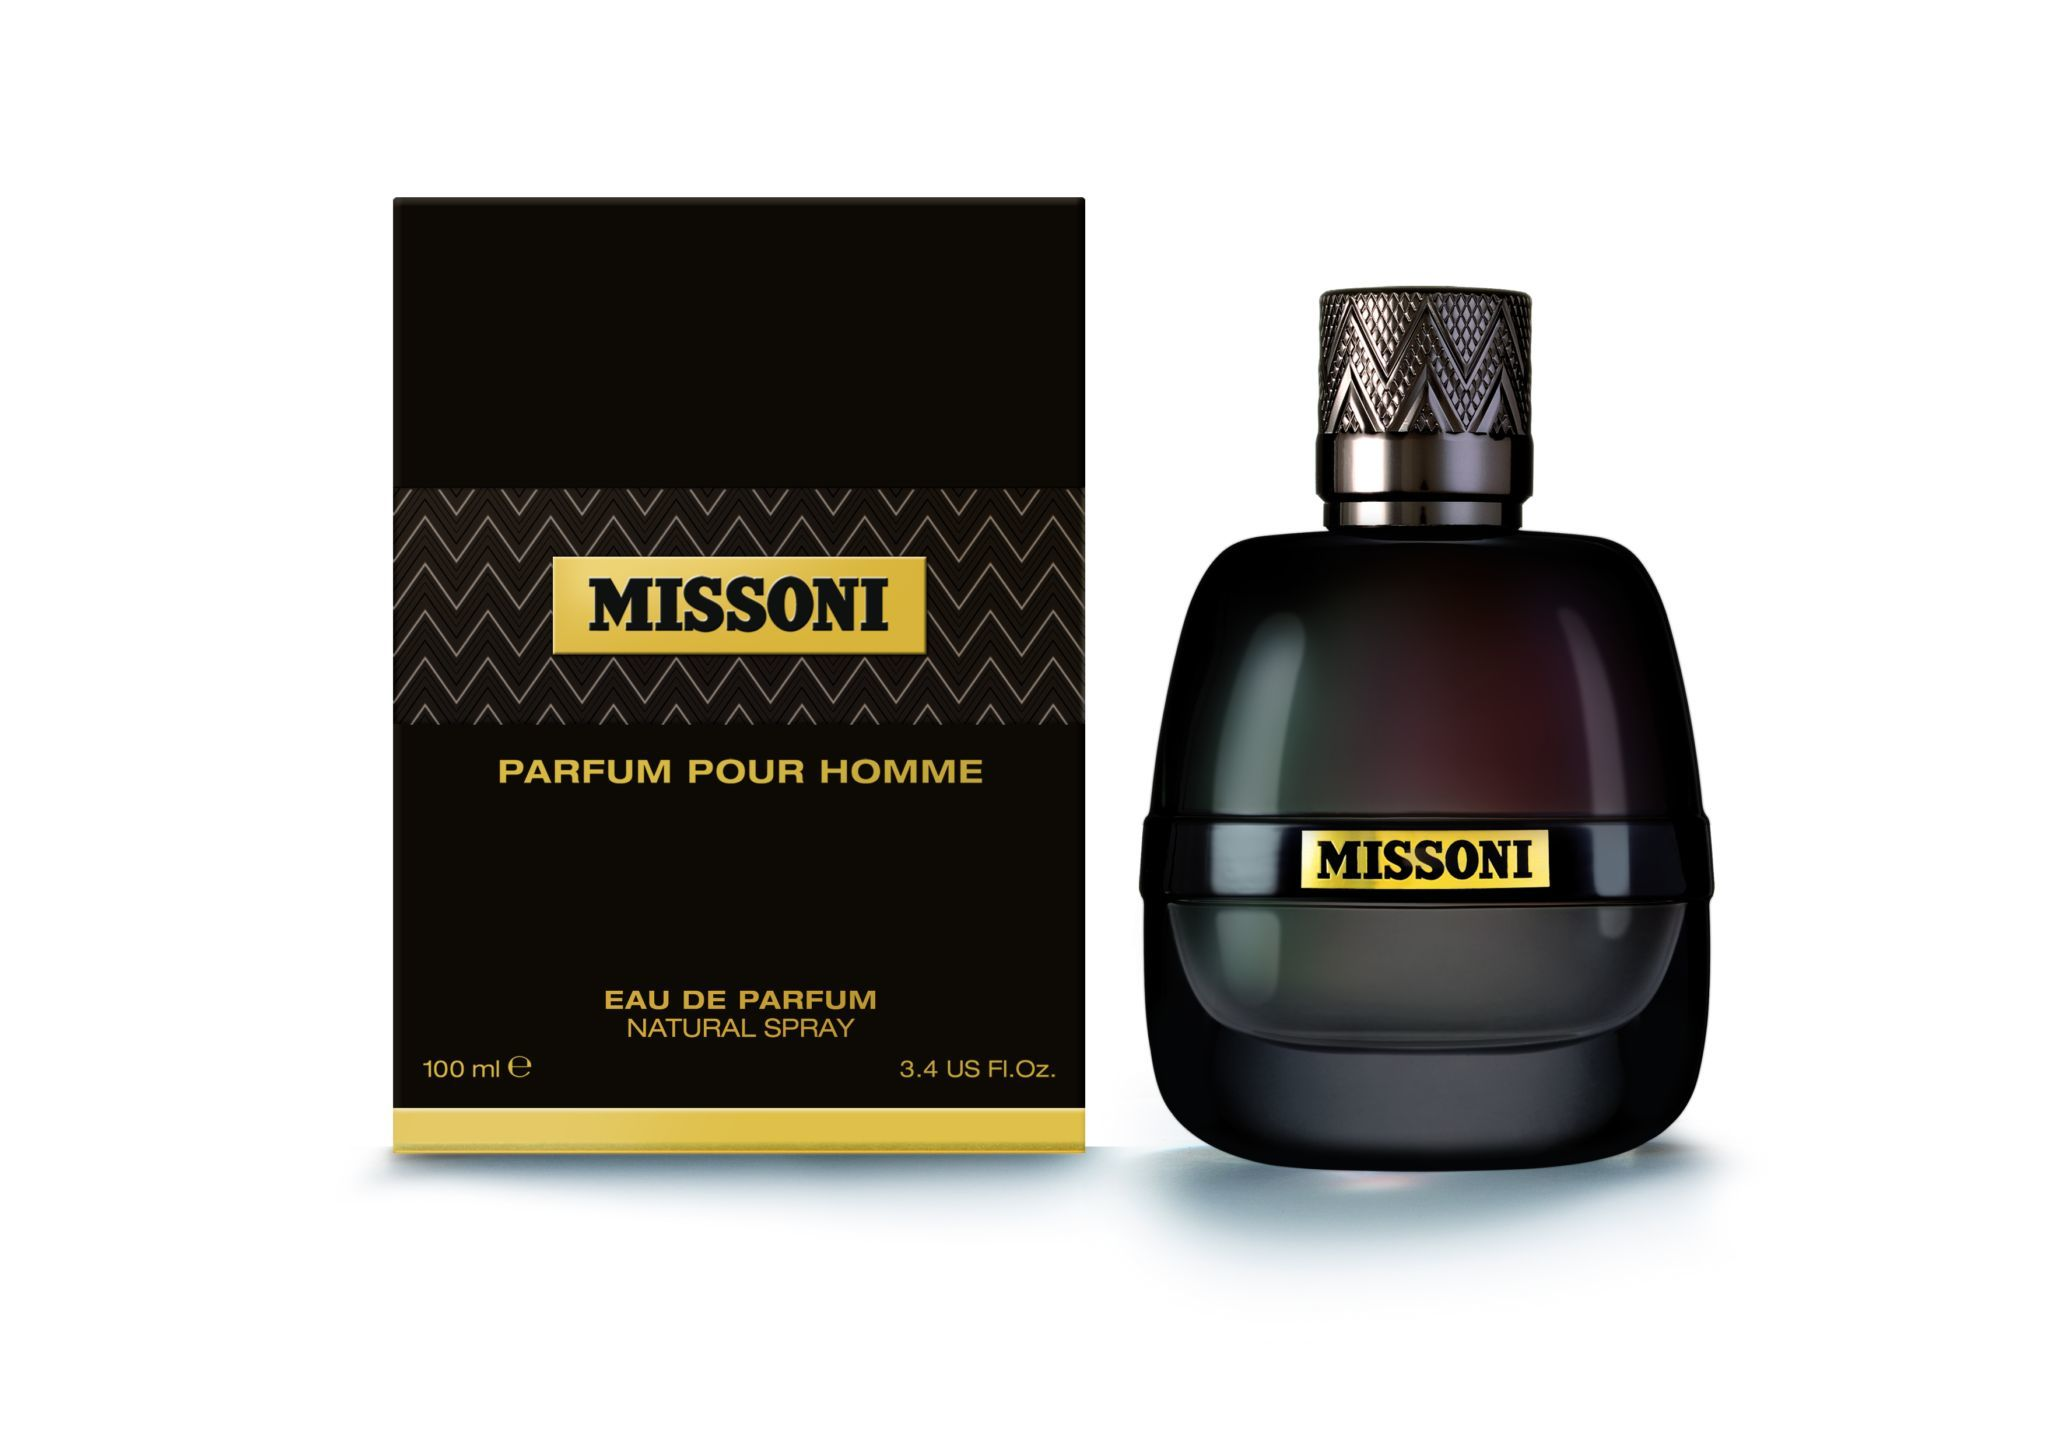 MissoniParfumPourHomme_100ml_pack.jpg#asset:2281